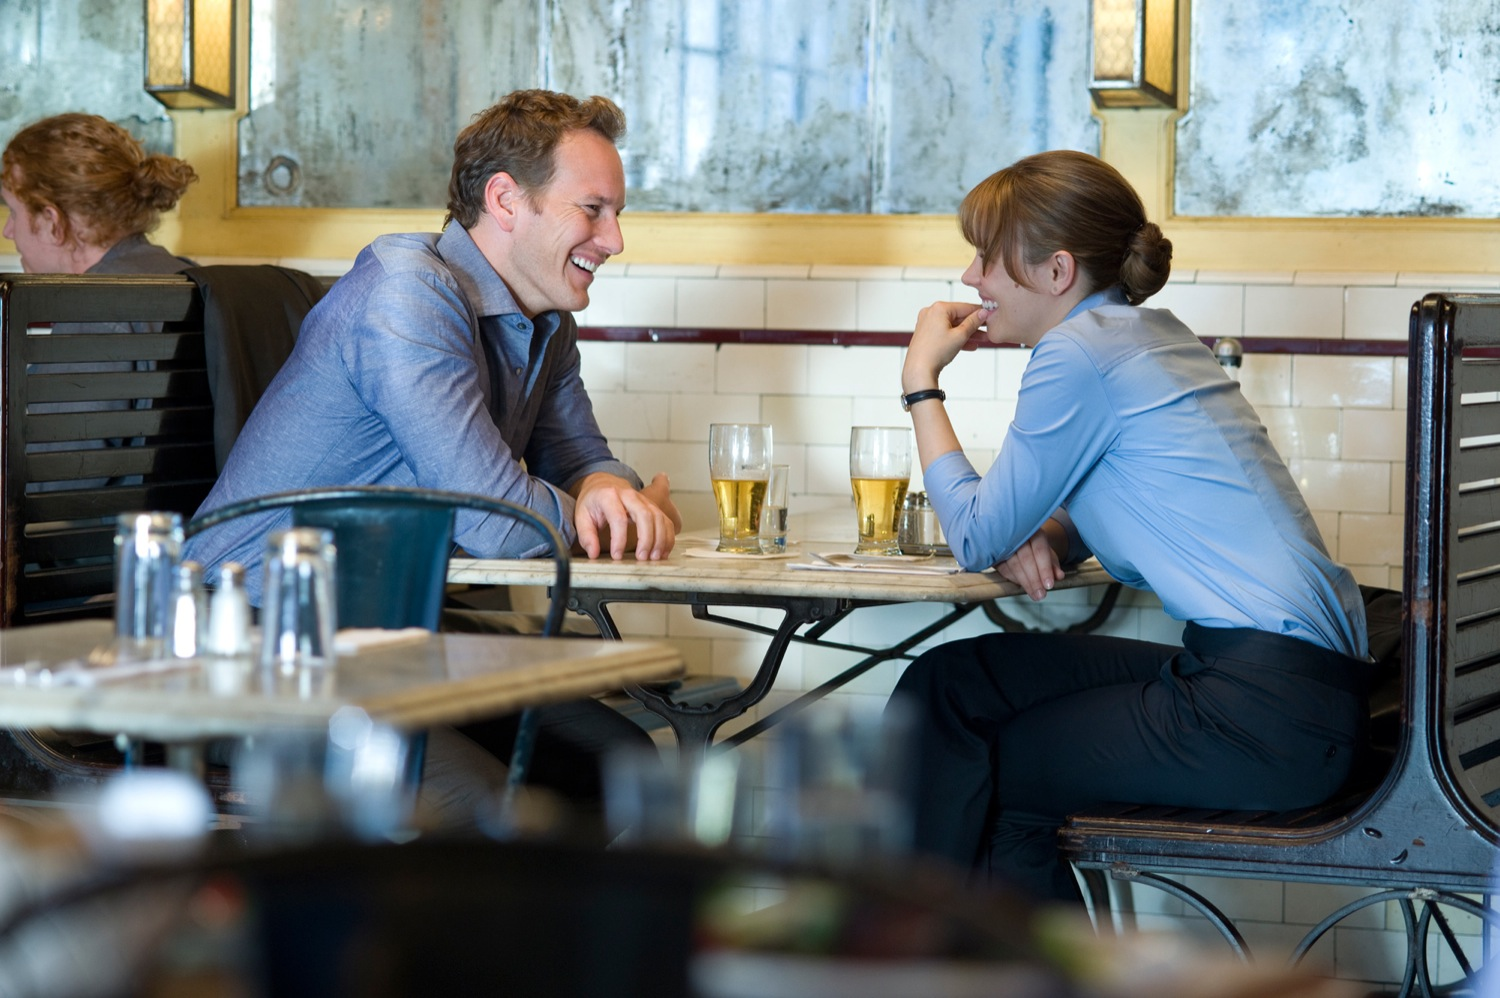 Patrick Wilson and Rachel McAdams in Morning Glory